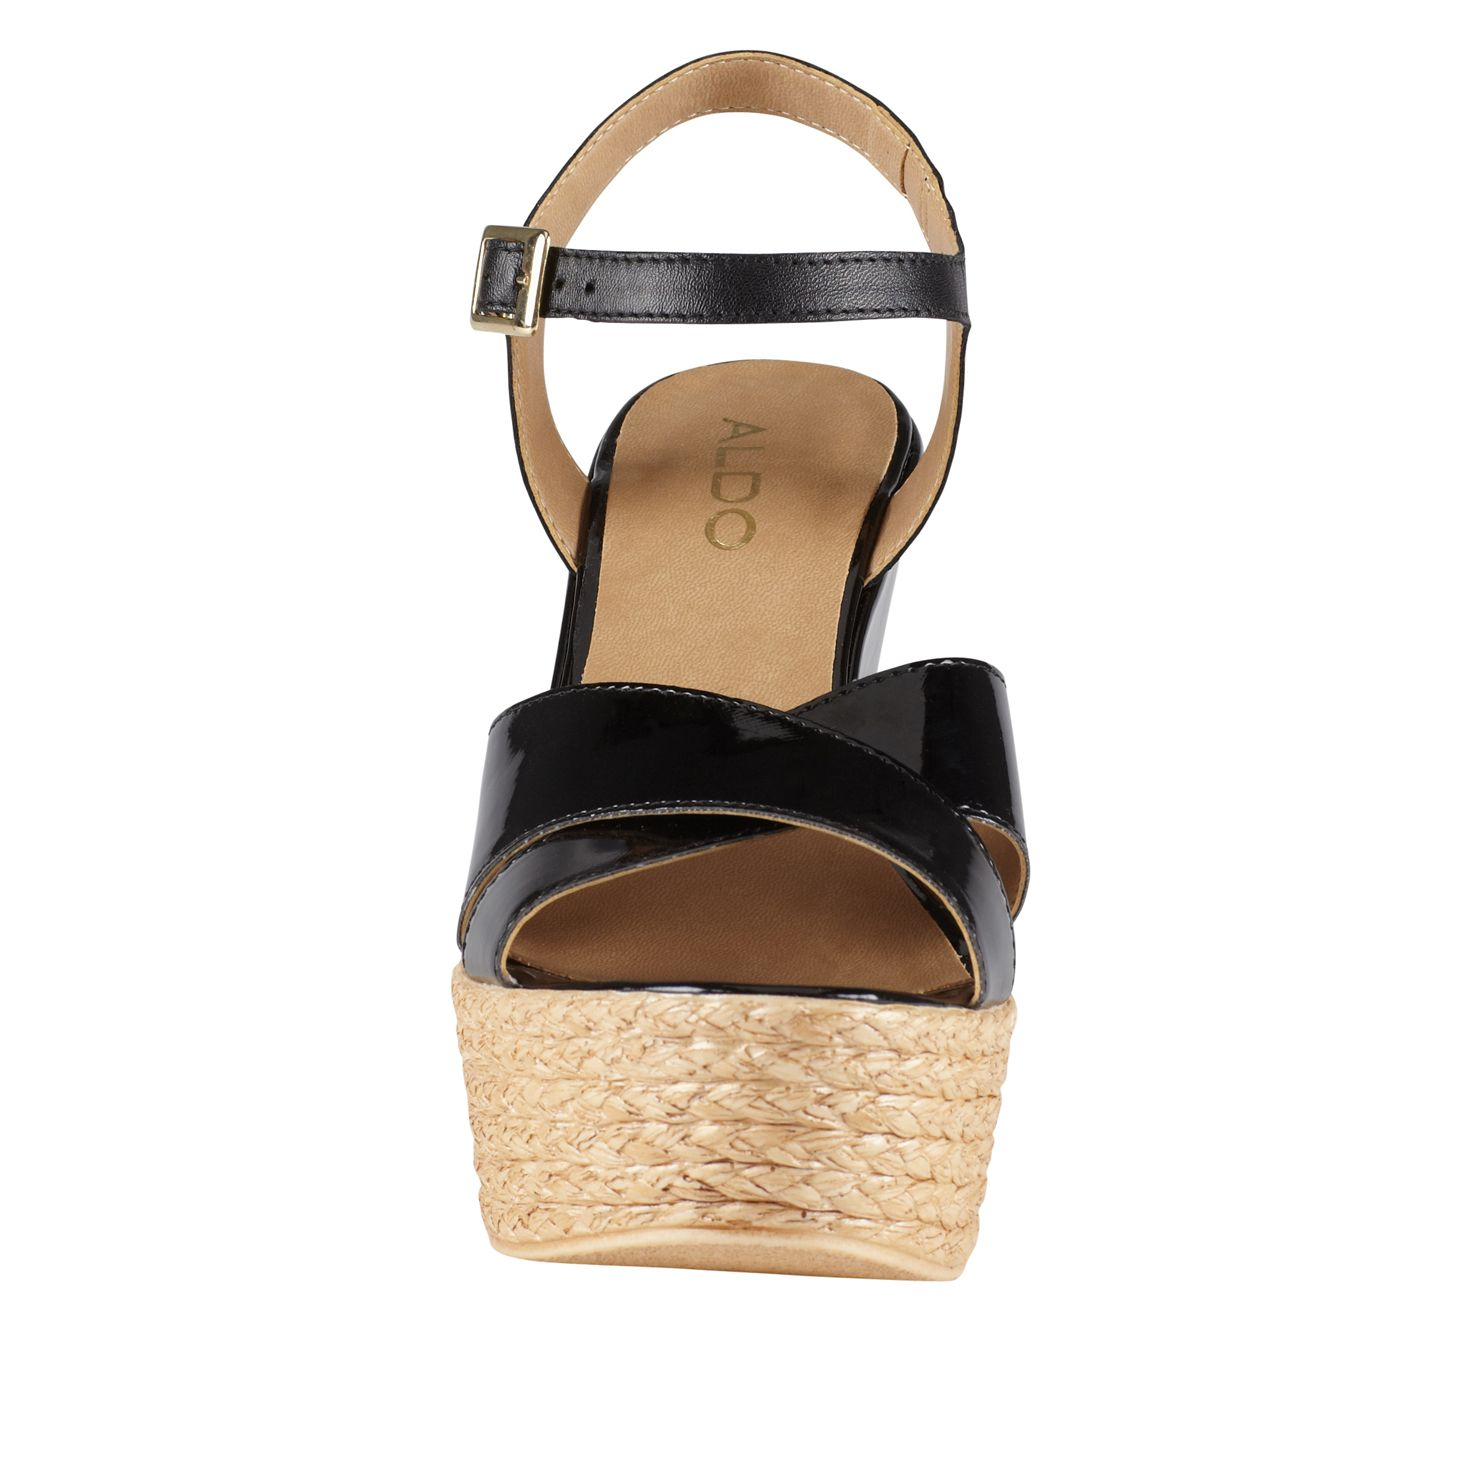 Frirwen wedge strap sandals